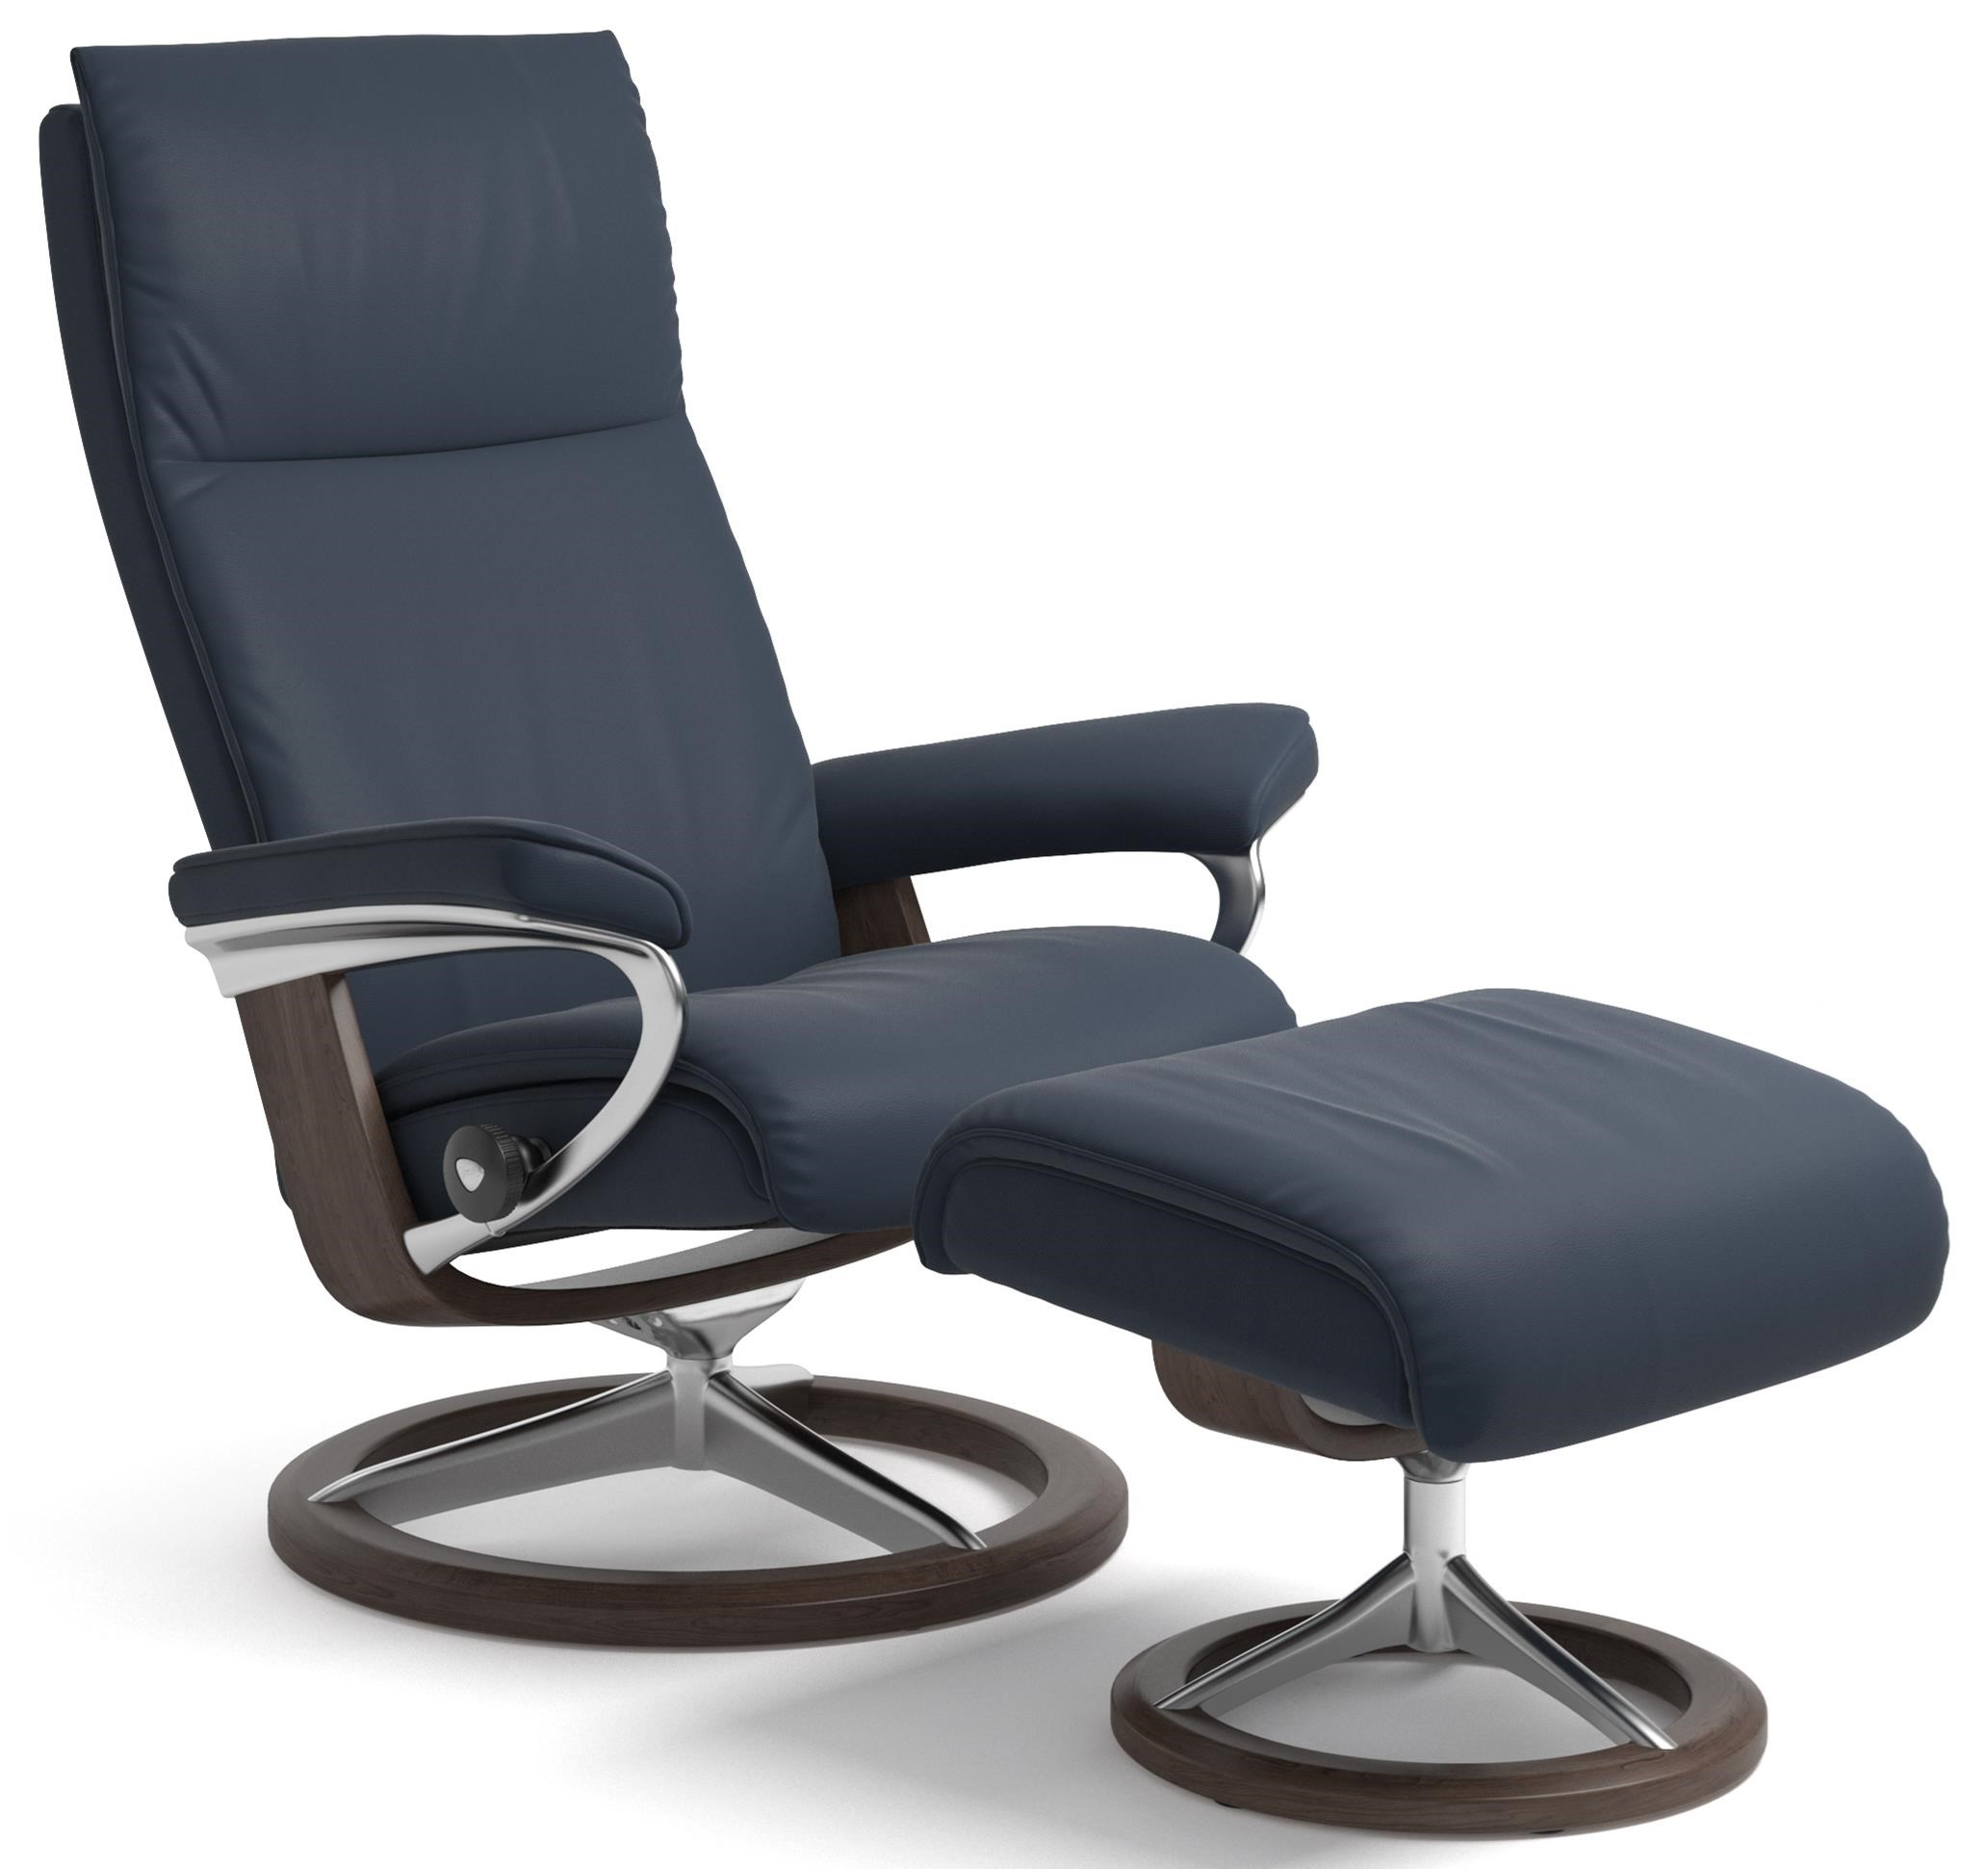 Aura Small Reclining Chair and Ottoman by Stressless at Virginia Furniture Market